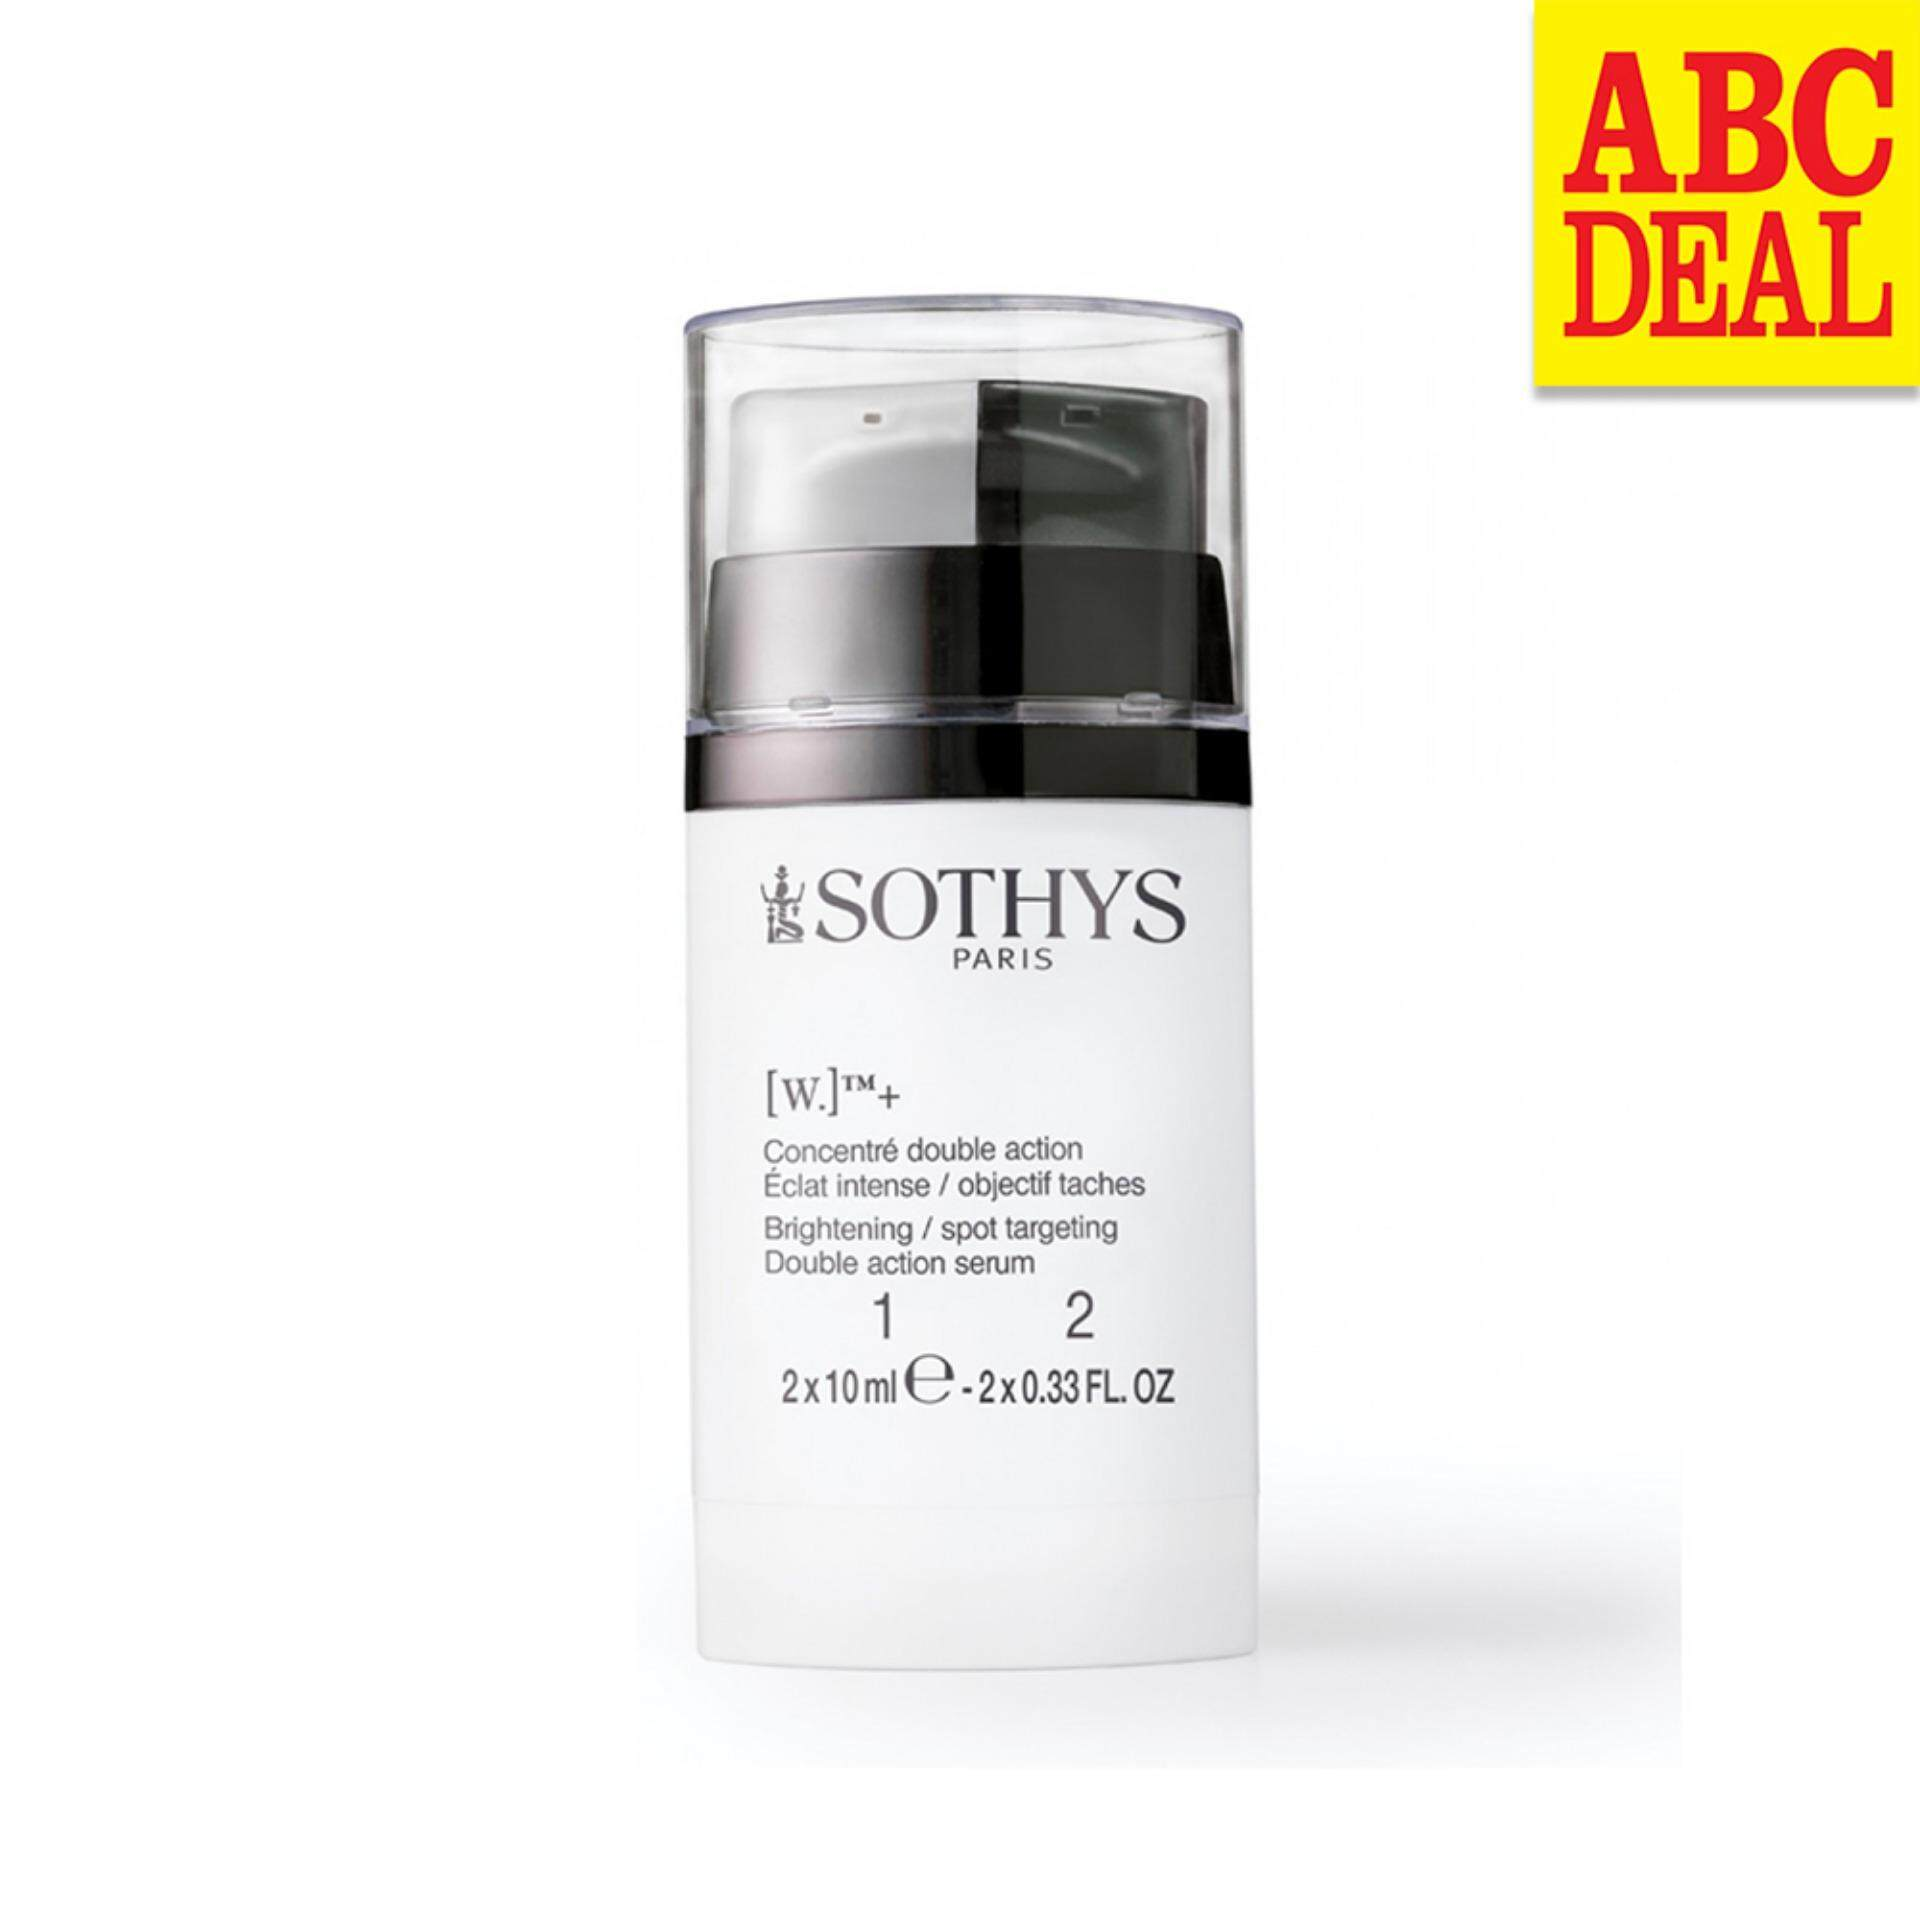 SOTHYS [W.]™+ Brightening Spot Targeting Double Action Serum – 10ml x 2 with 5 Free Authentic Sothys Samples (Random)